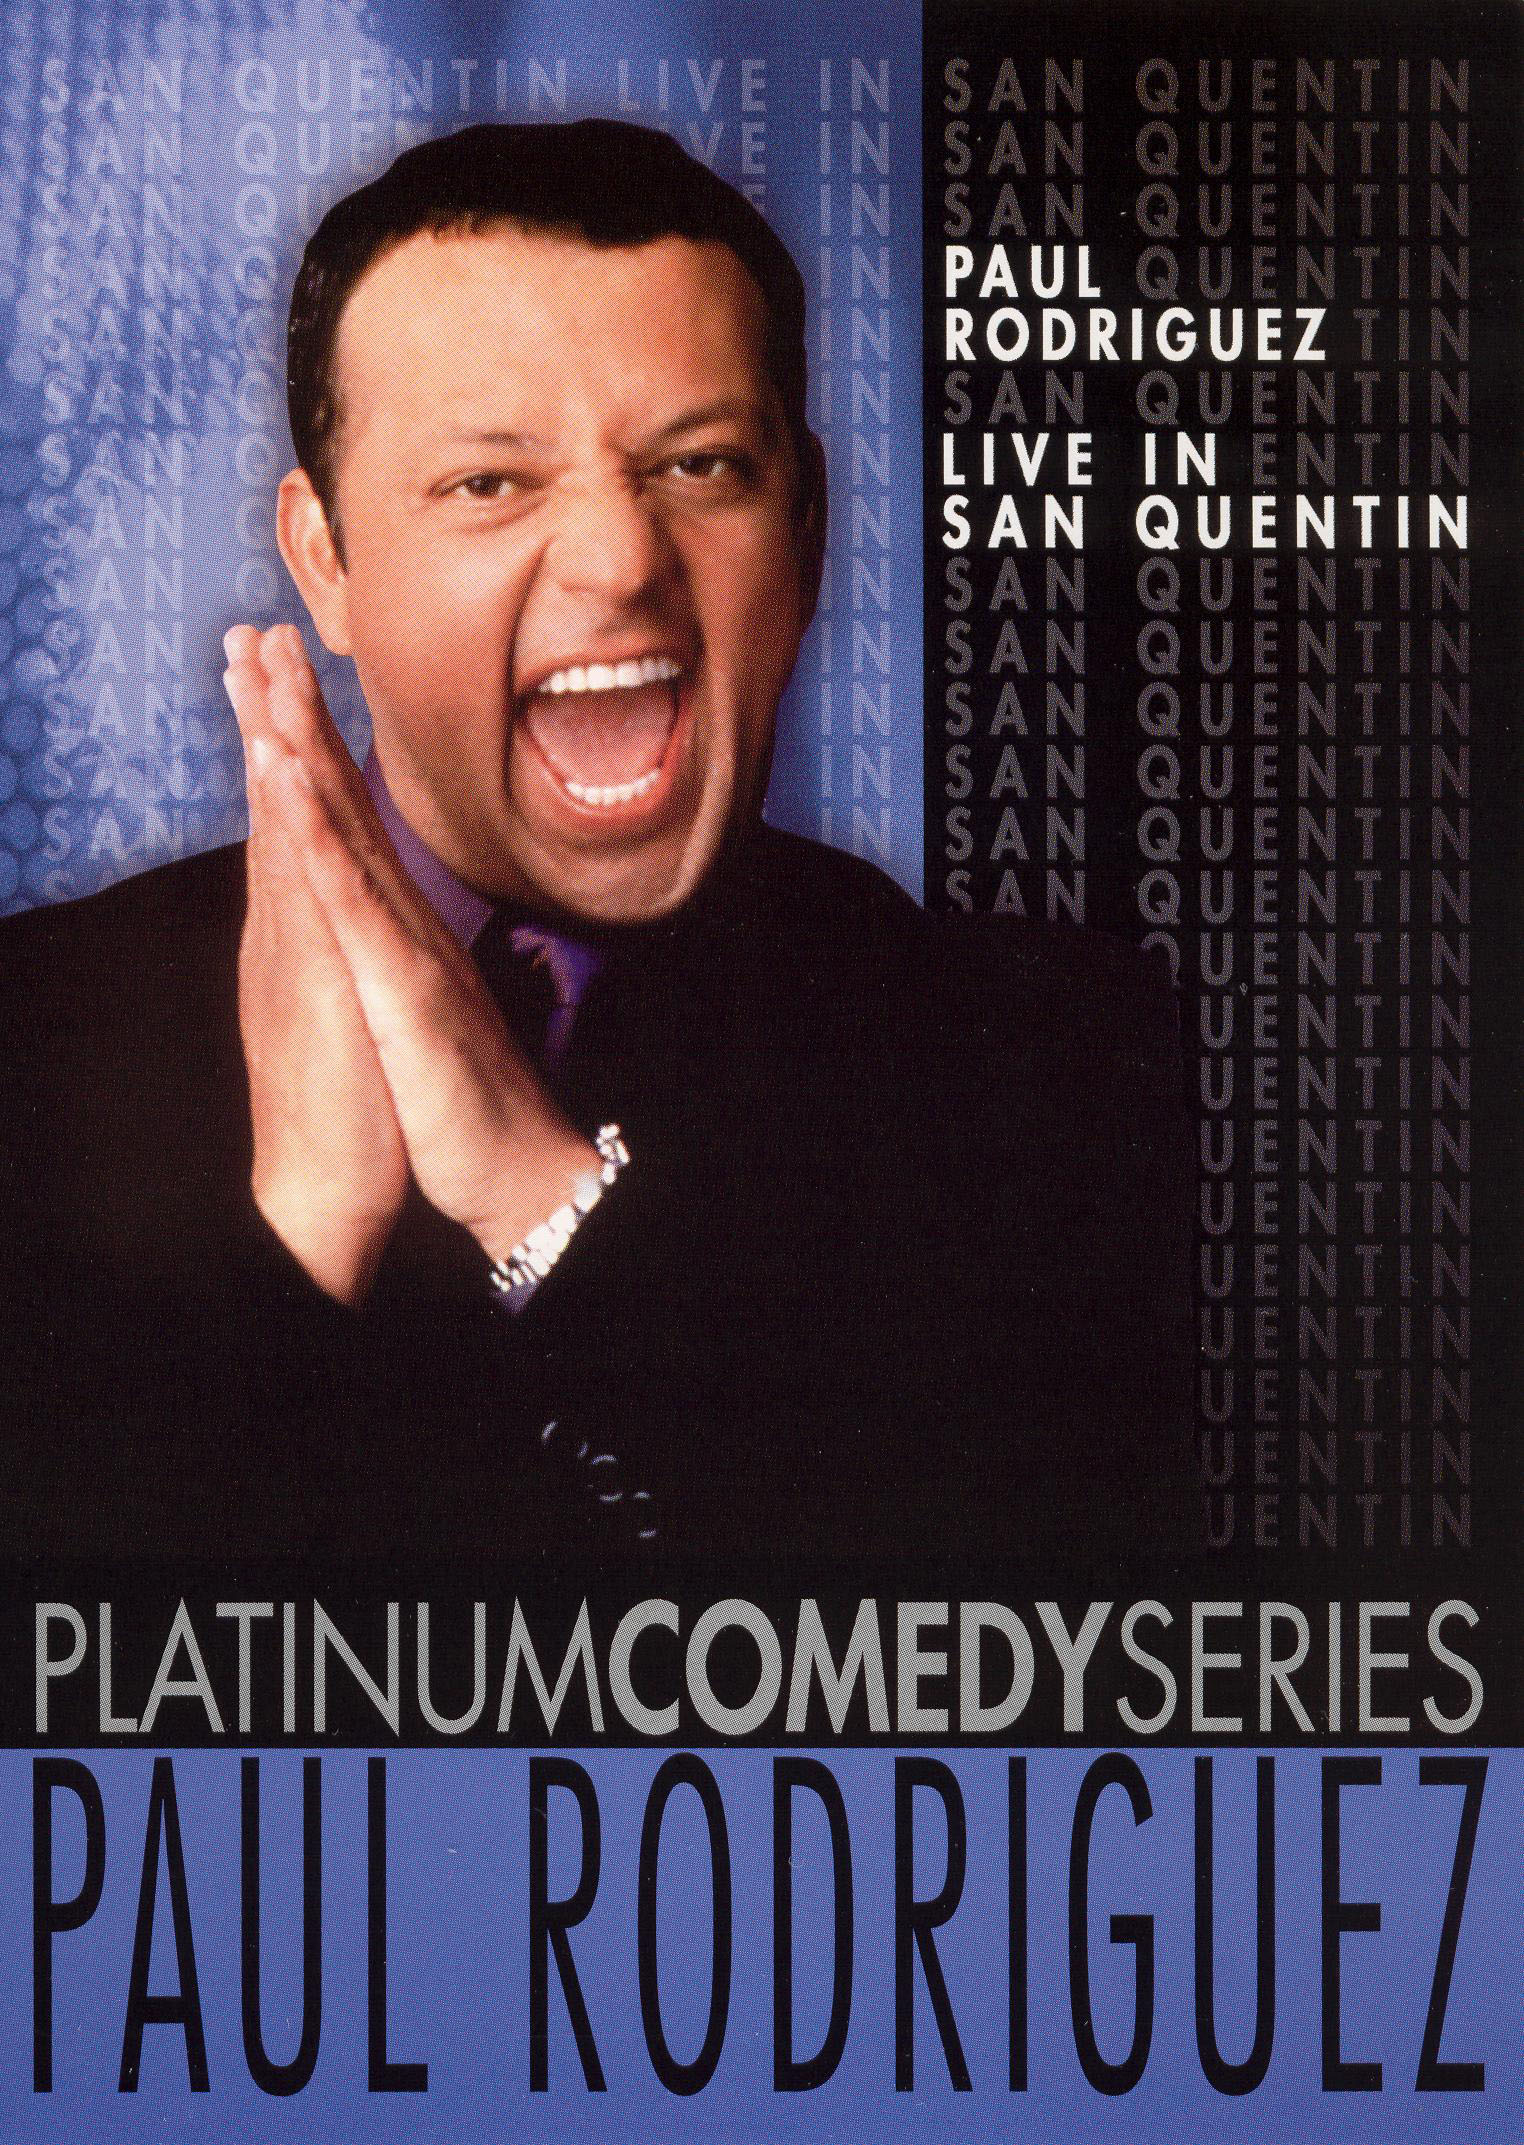 Platinum Comedy Series: Paul Rodriguez - Behind Bars Live in San Francisco